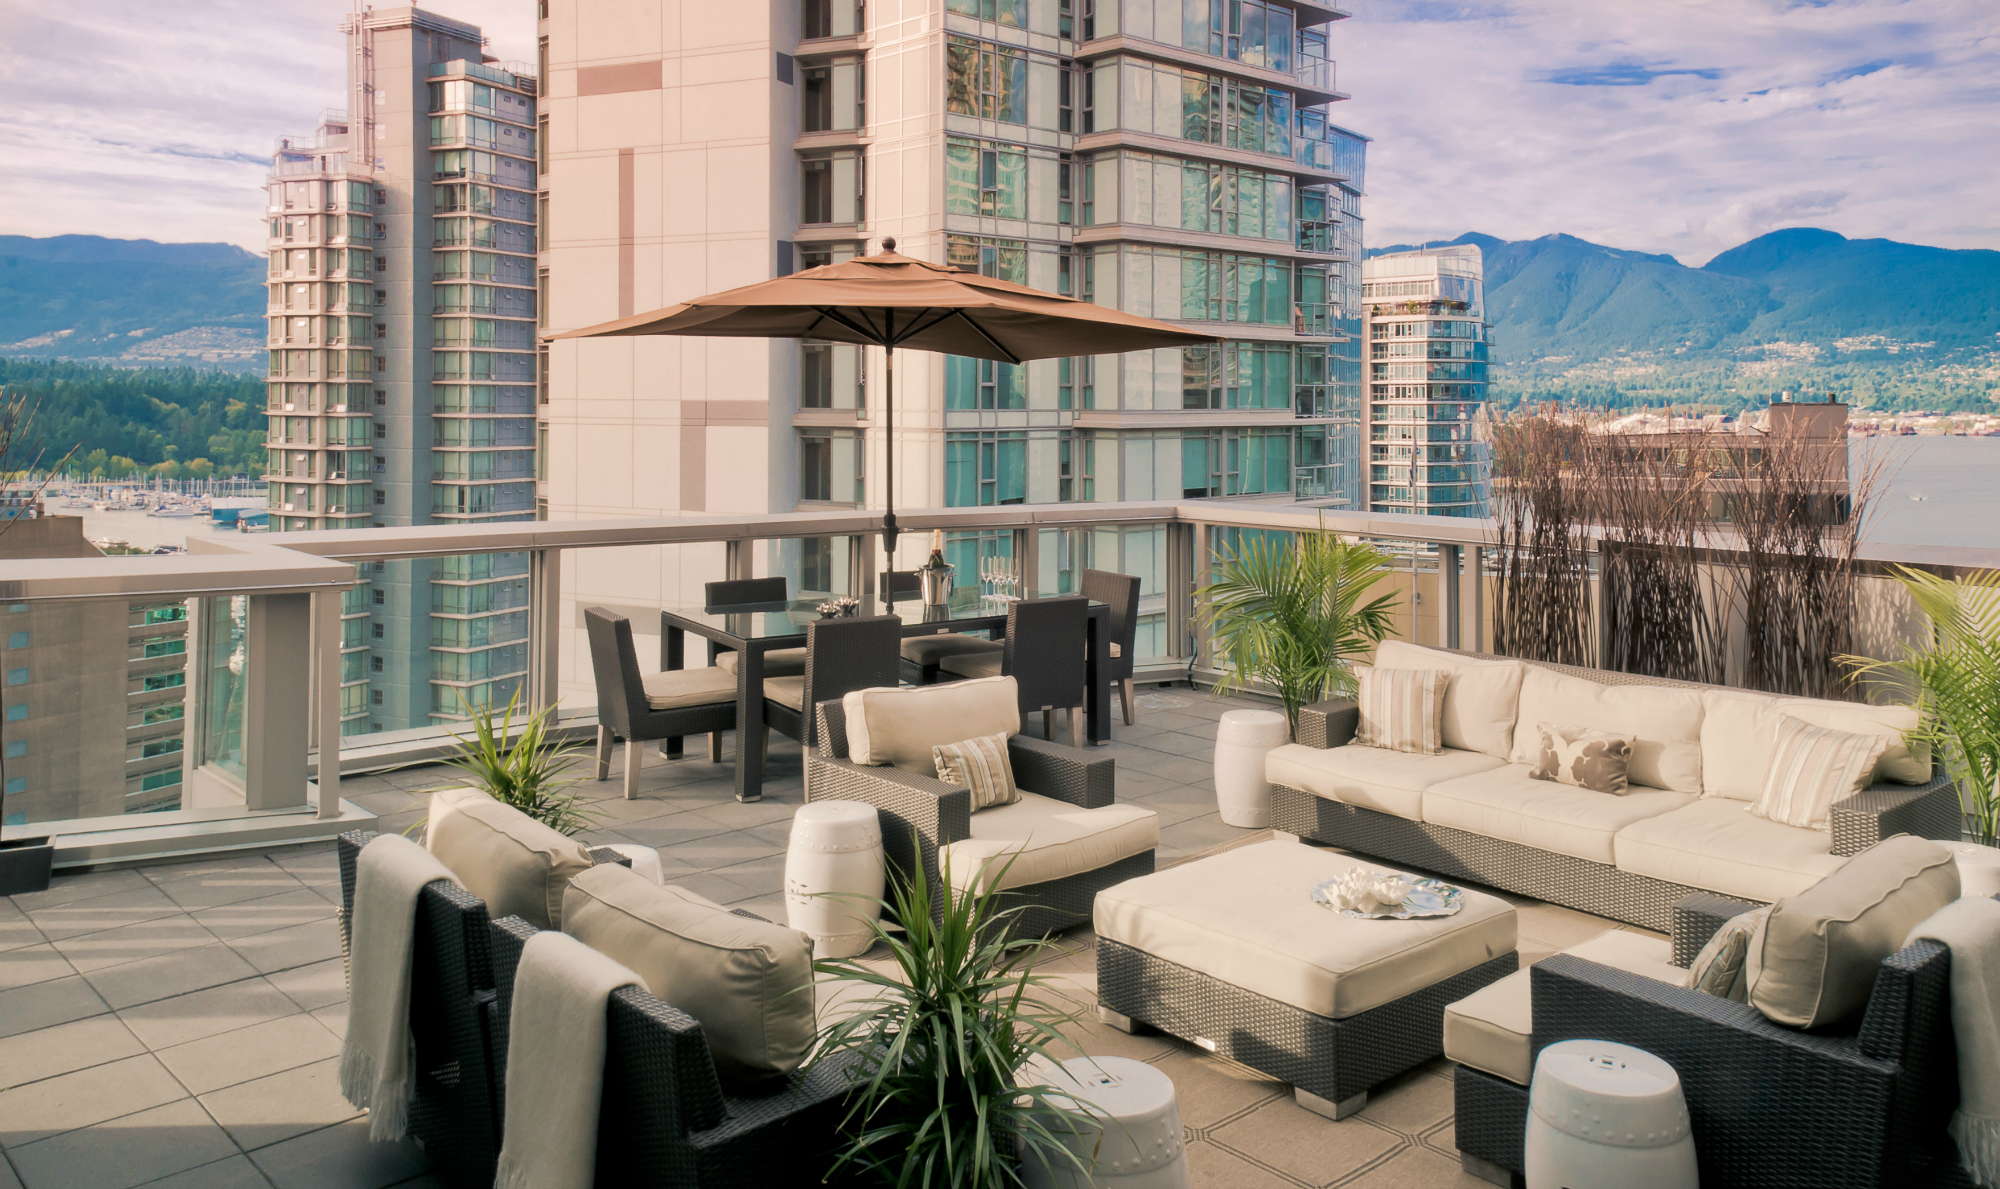 Loden Hotel penthouse patio with view